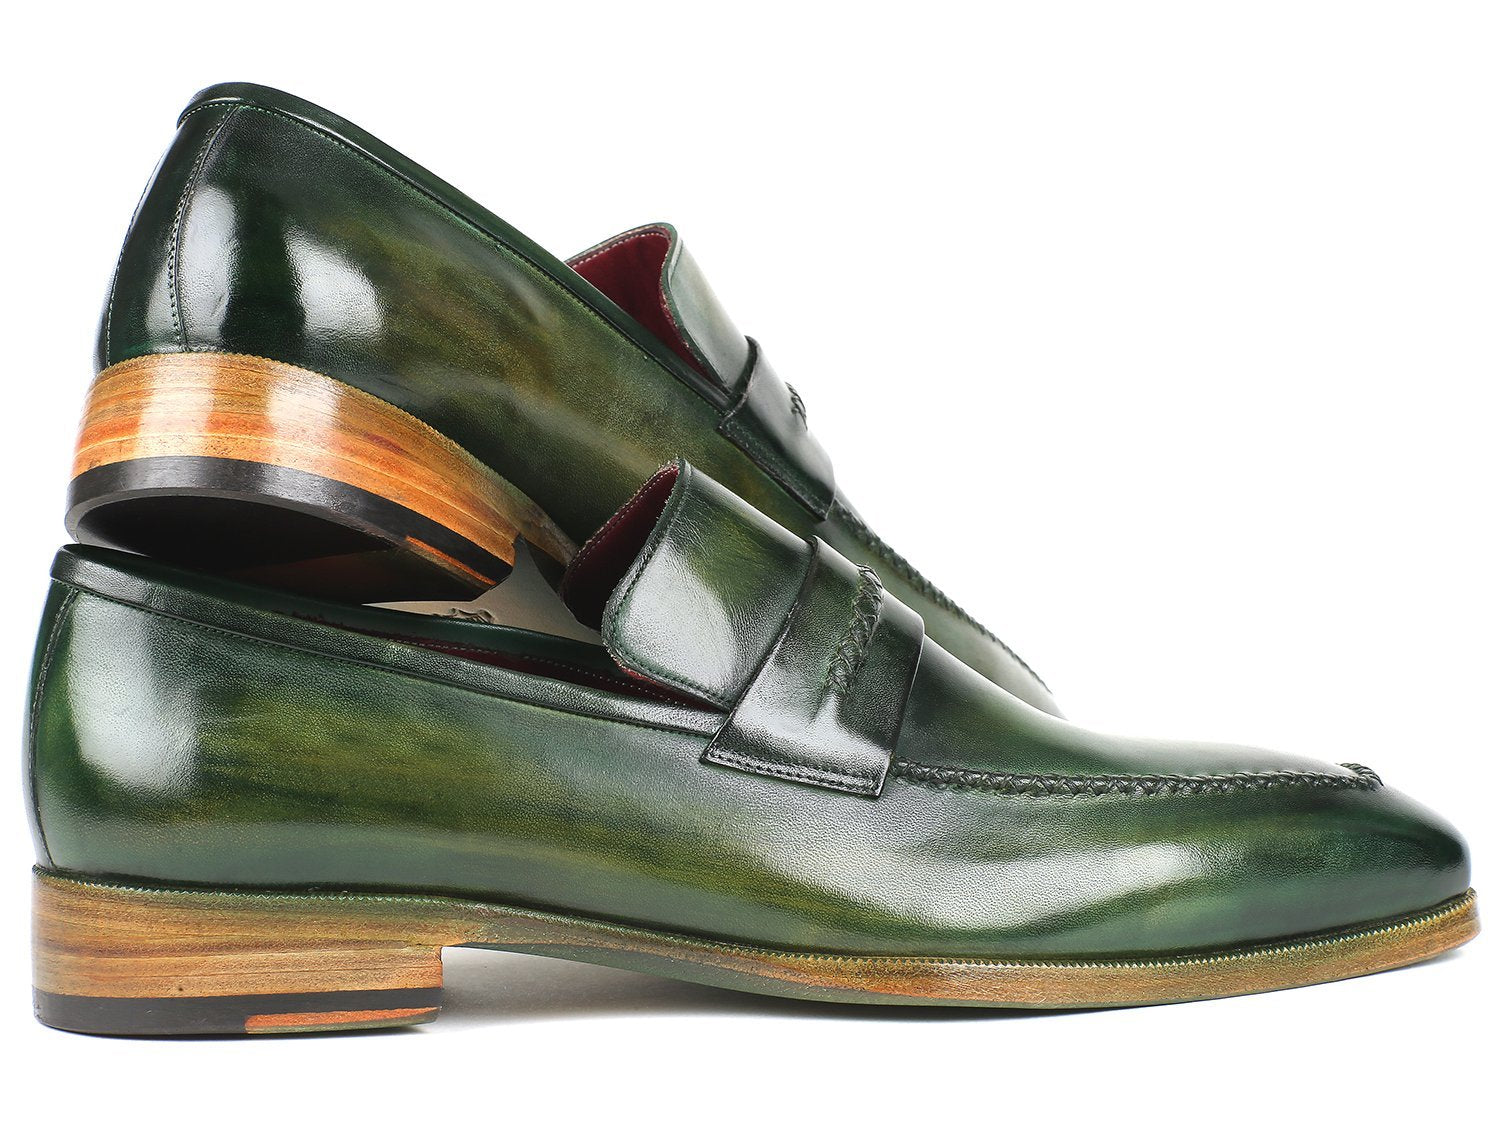 Paul Parkman Men's Loafer Shoes Green (ID#068-GRN)